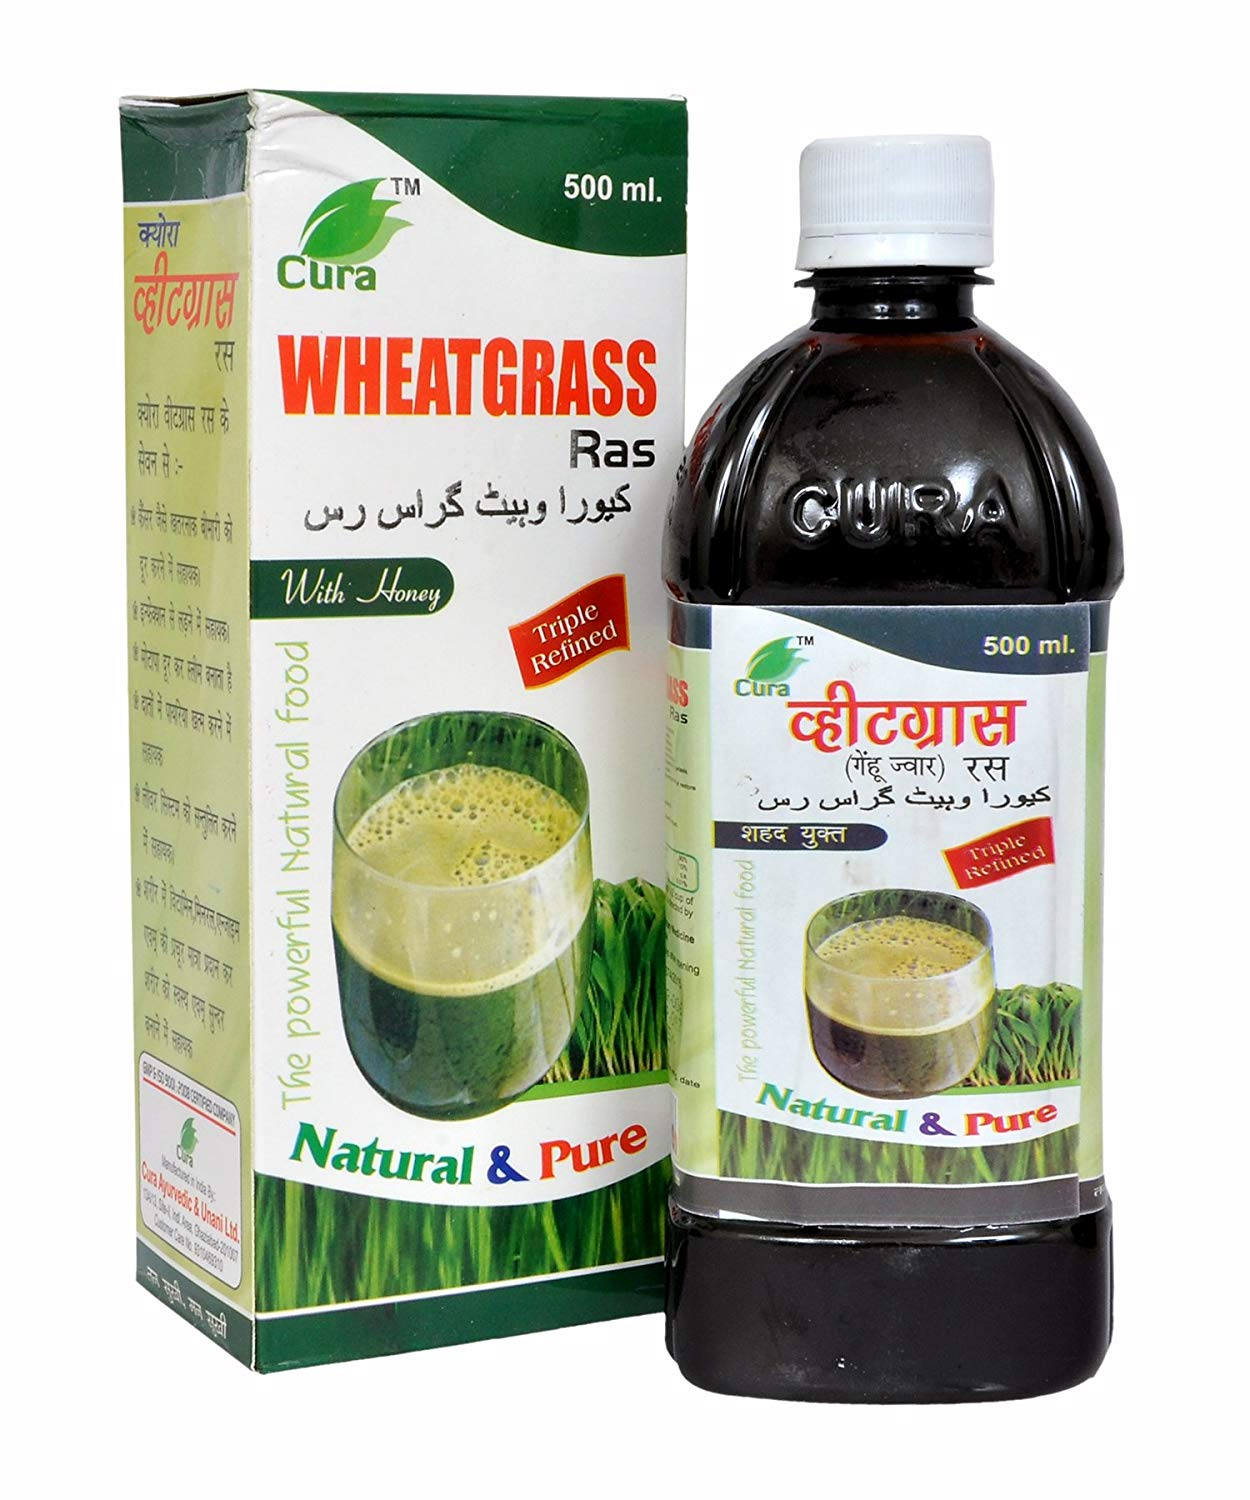 Cura wheatgrass ras